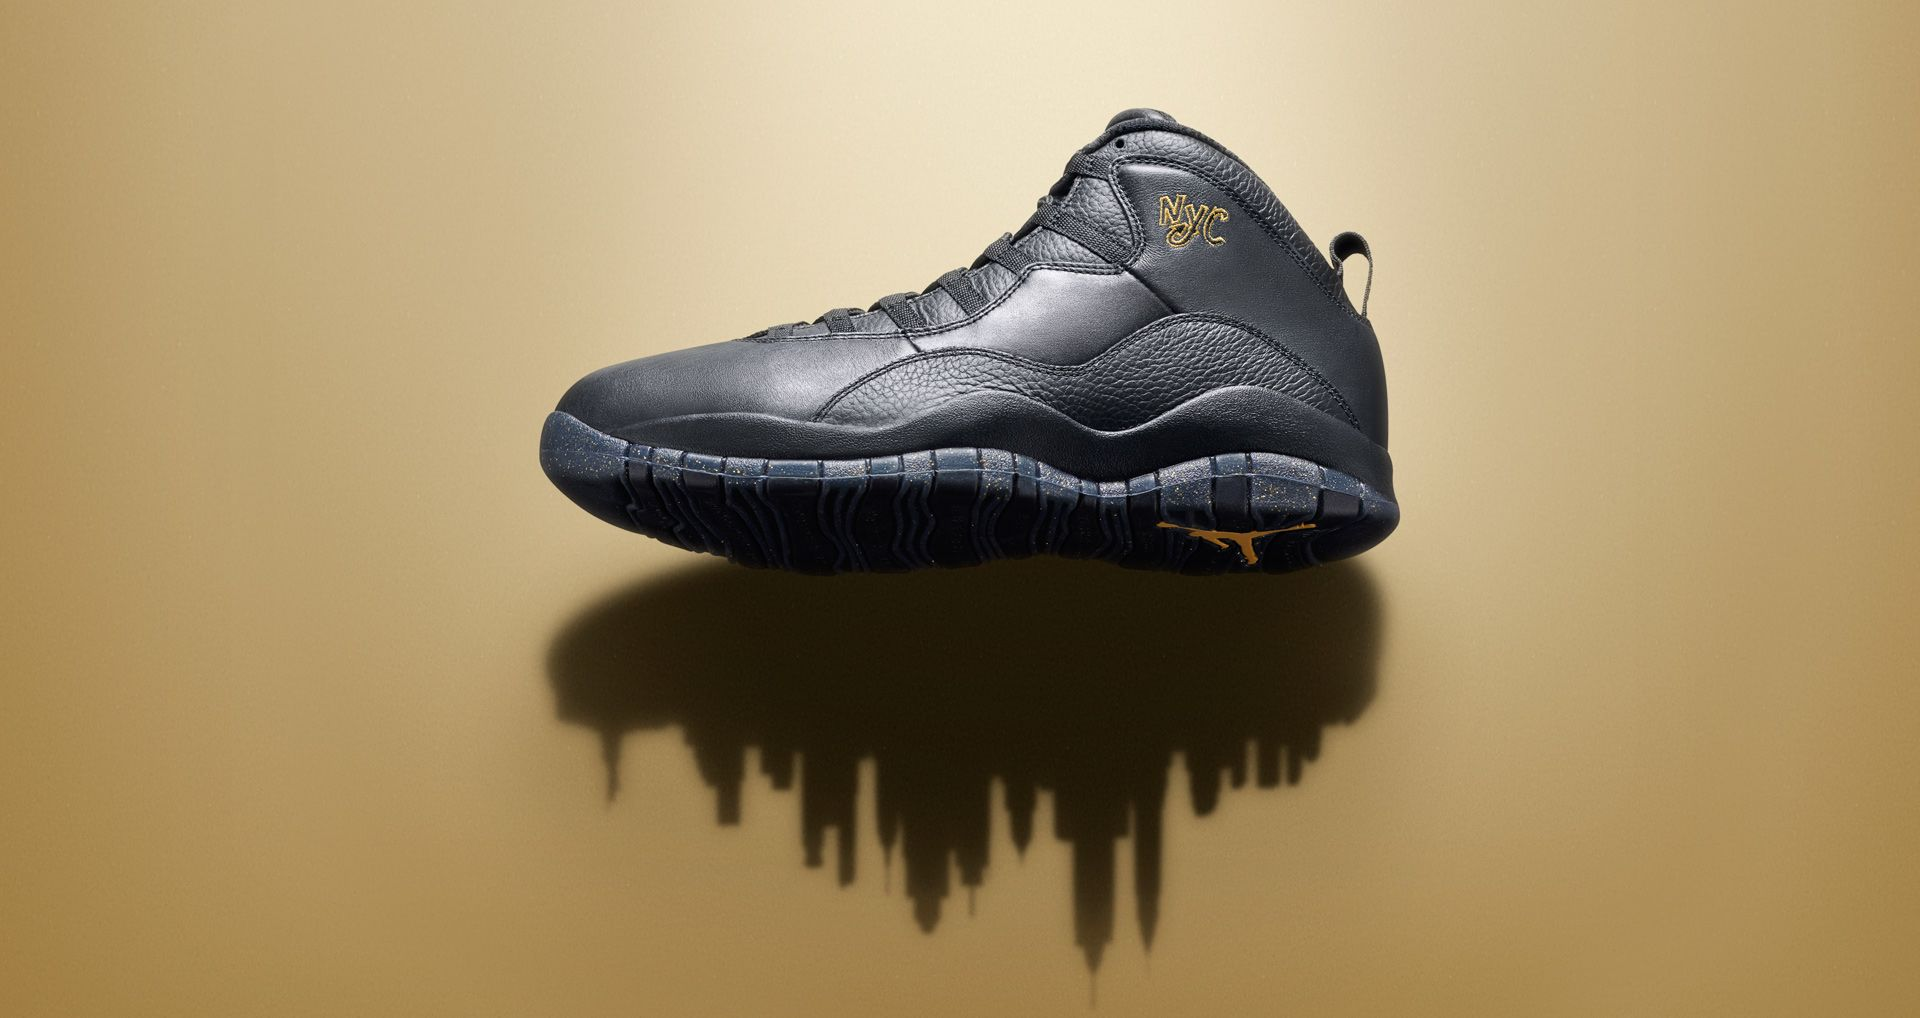 Release 'nyc' DateNike⁠Snkrs Air Retro Jordan 10 RSALc34q5j